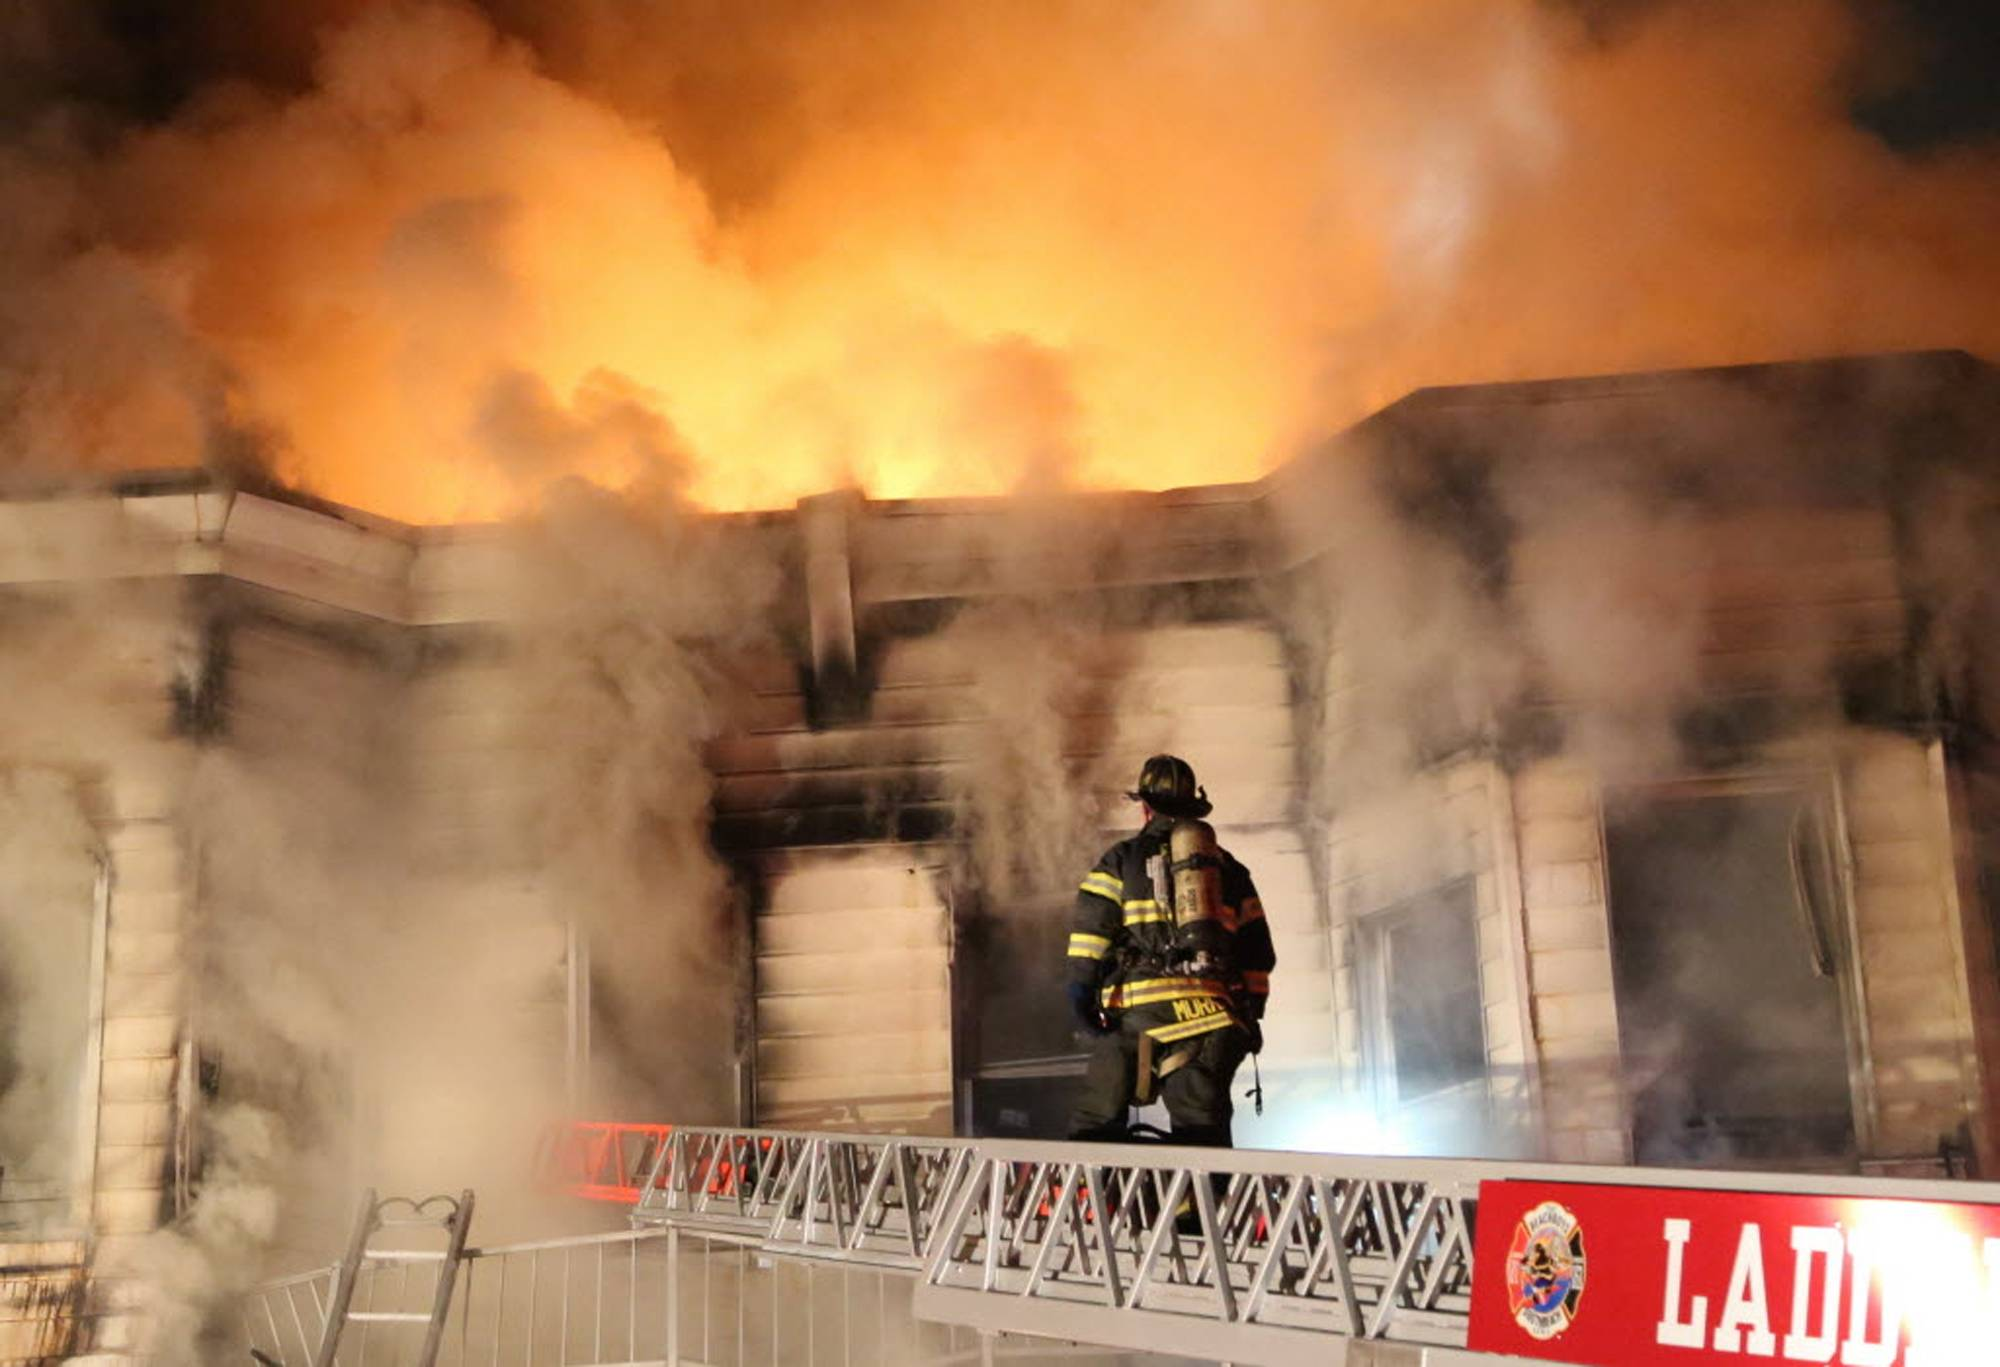 At least 34 people were injured in a fire that tore through three townhouses on New York City's Staten Island early Thursday, including two young children who were tossed out of a smoke-filled second-floor window into the arms of neighbors below, authorities and witnesses said.